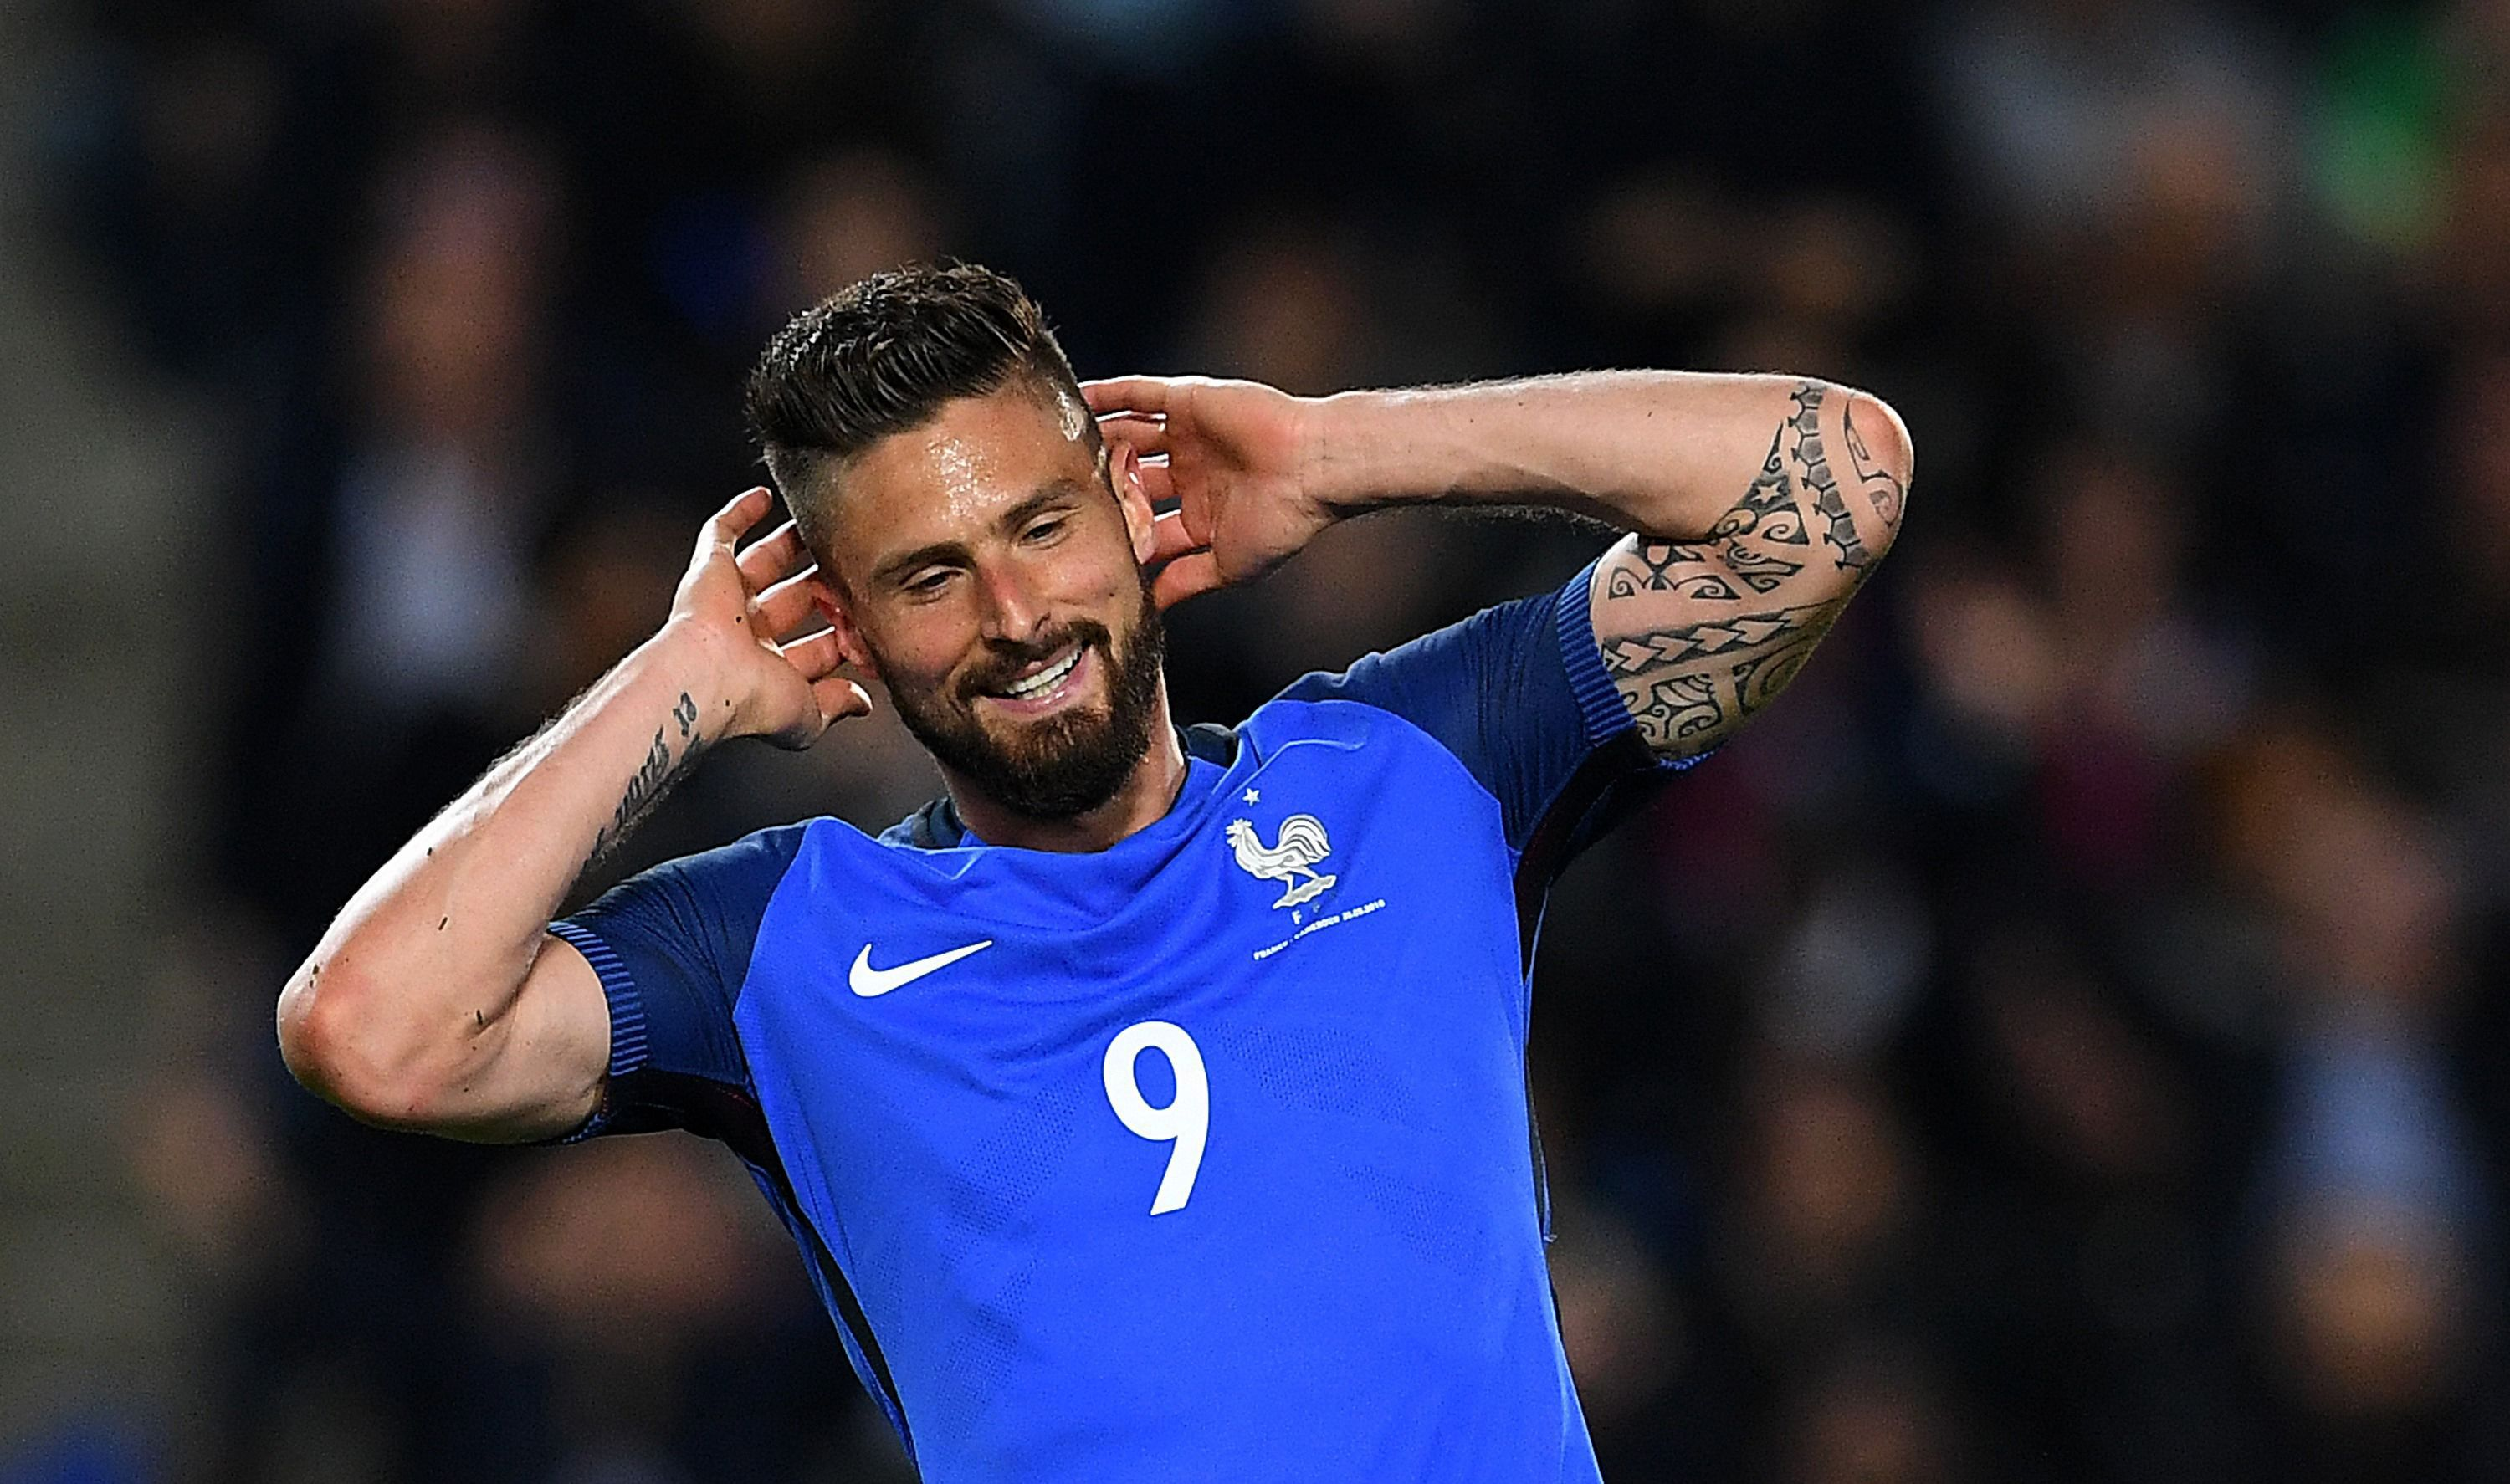 Giroud pourquoi tant de haine euro 2016 football for Olivier giroud squadre attuali